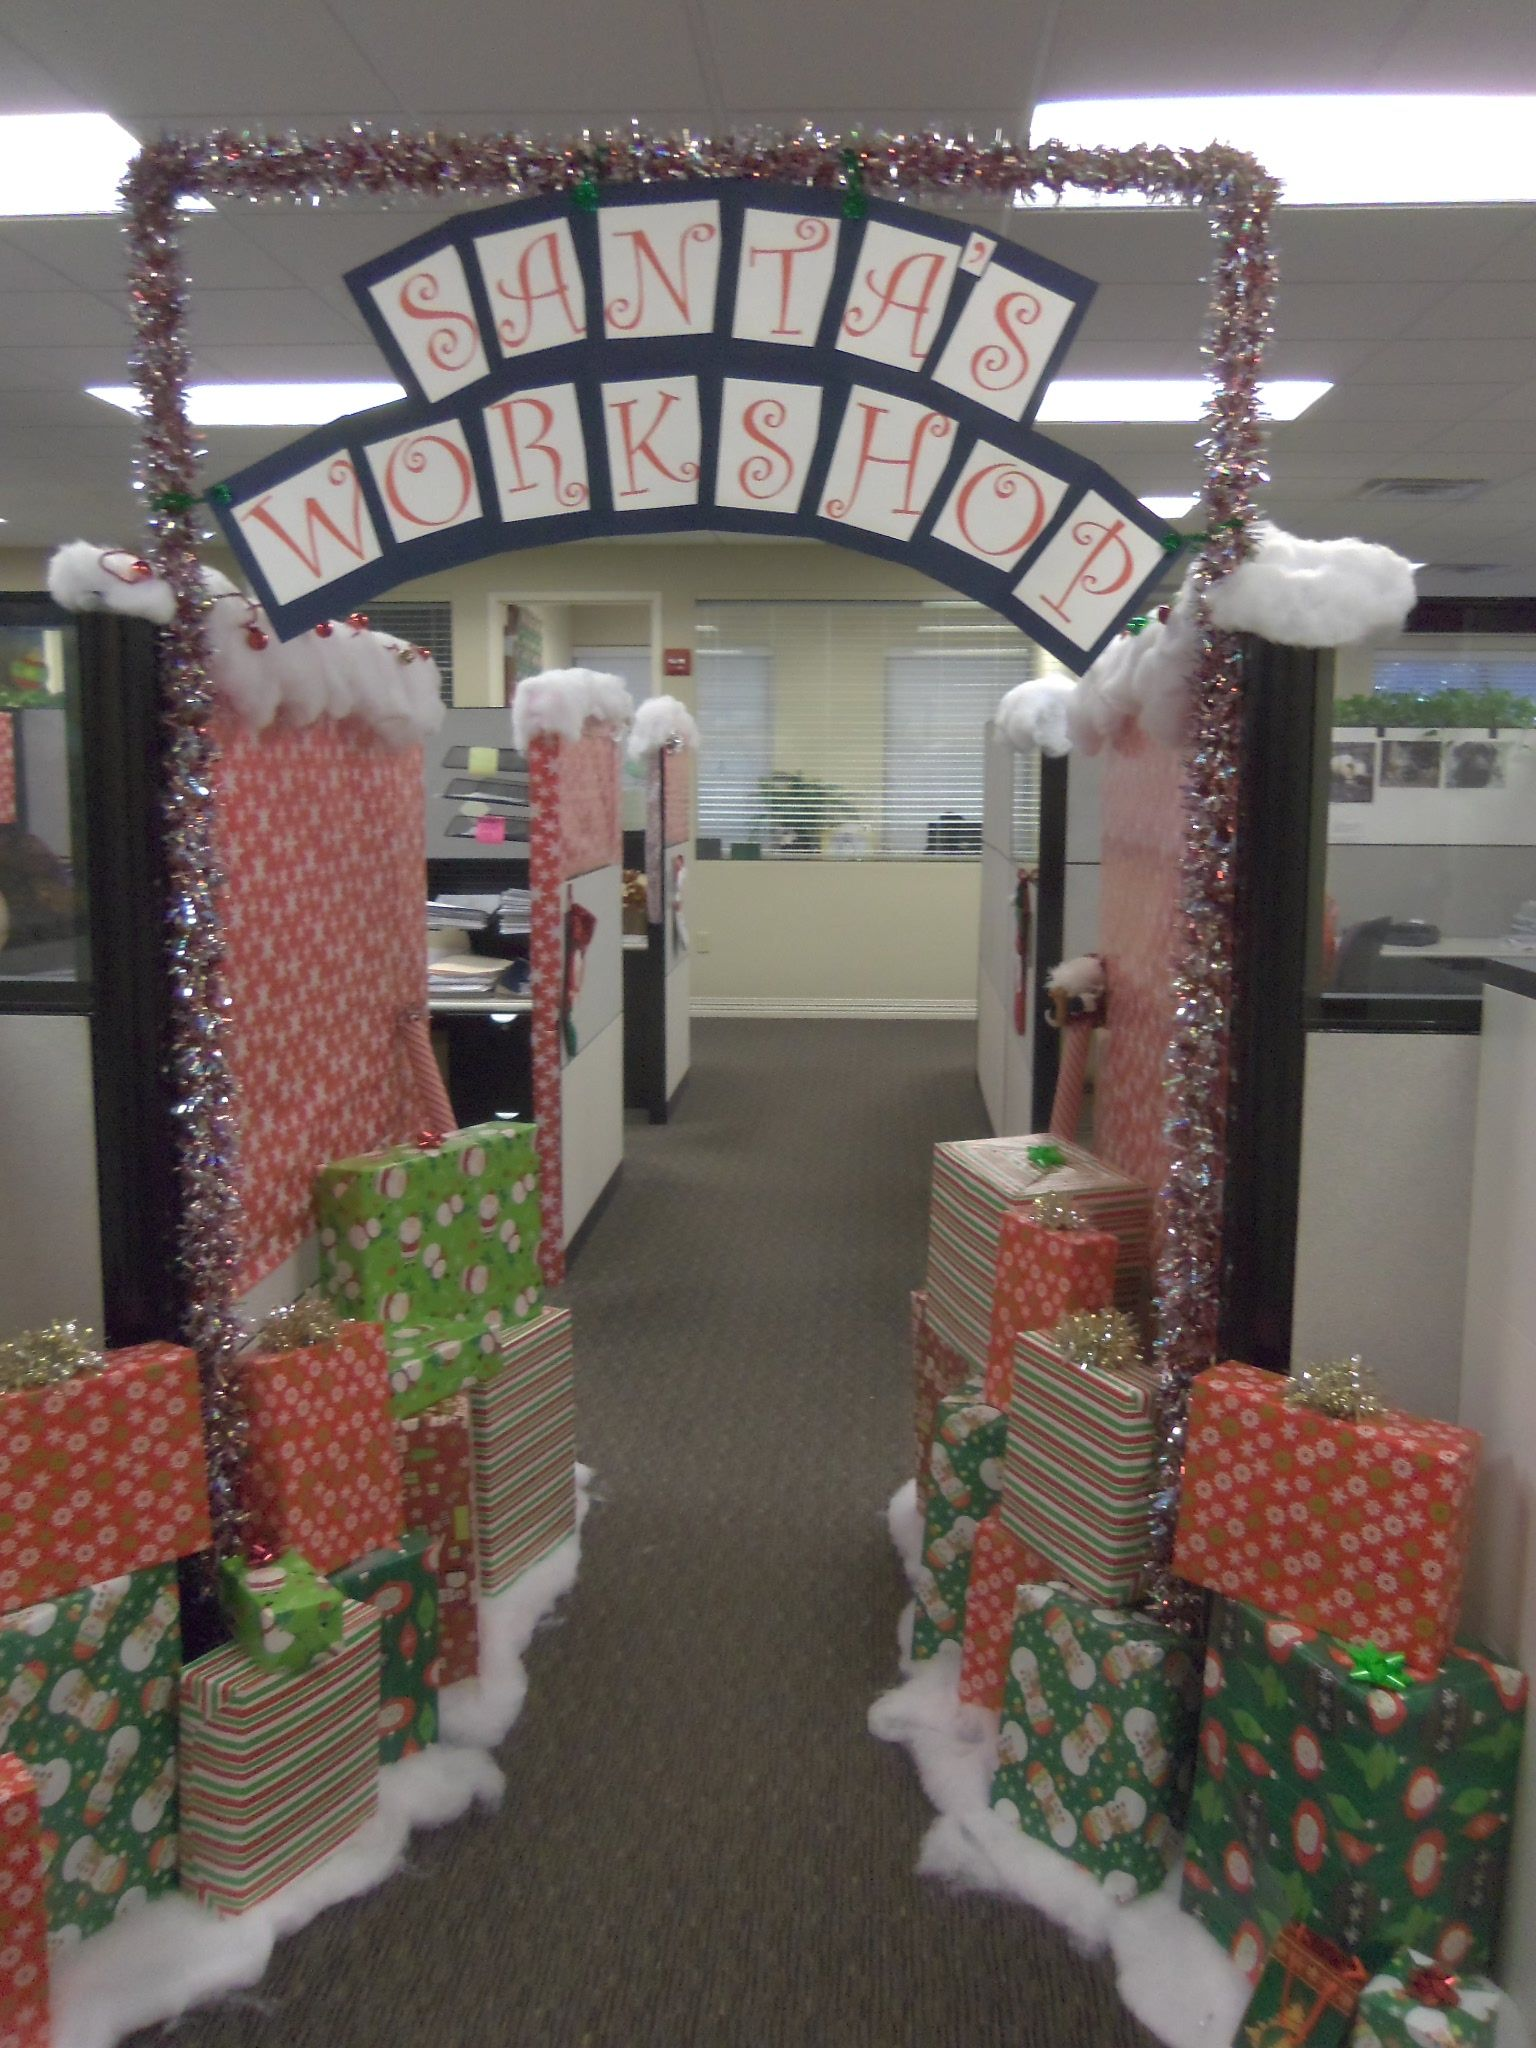 christmas decorations can boost morale at the office leland management embraces the season and encourages the holiday spirit - Christmas Decorations For Work